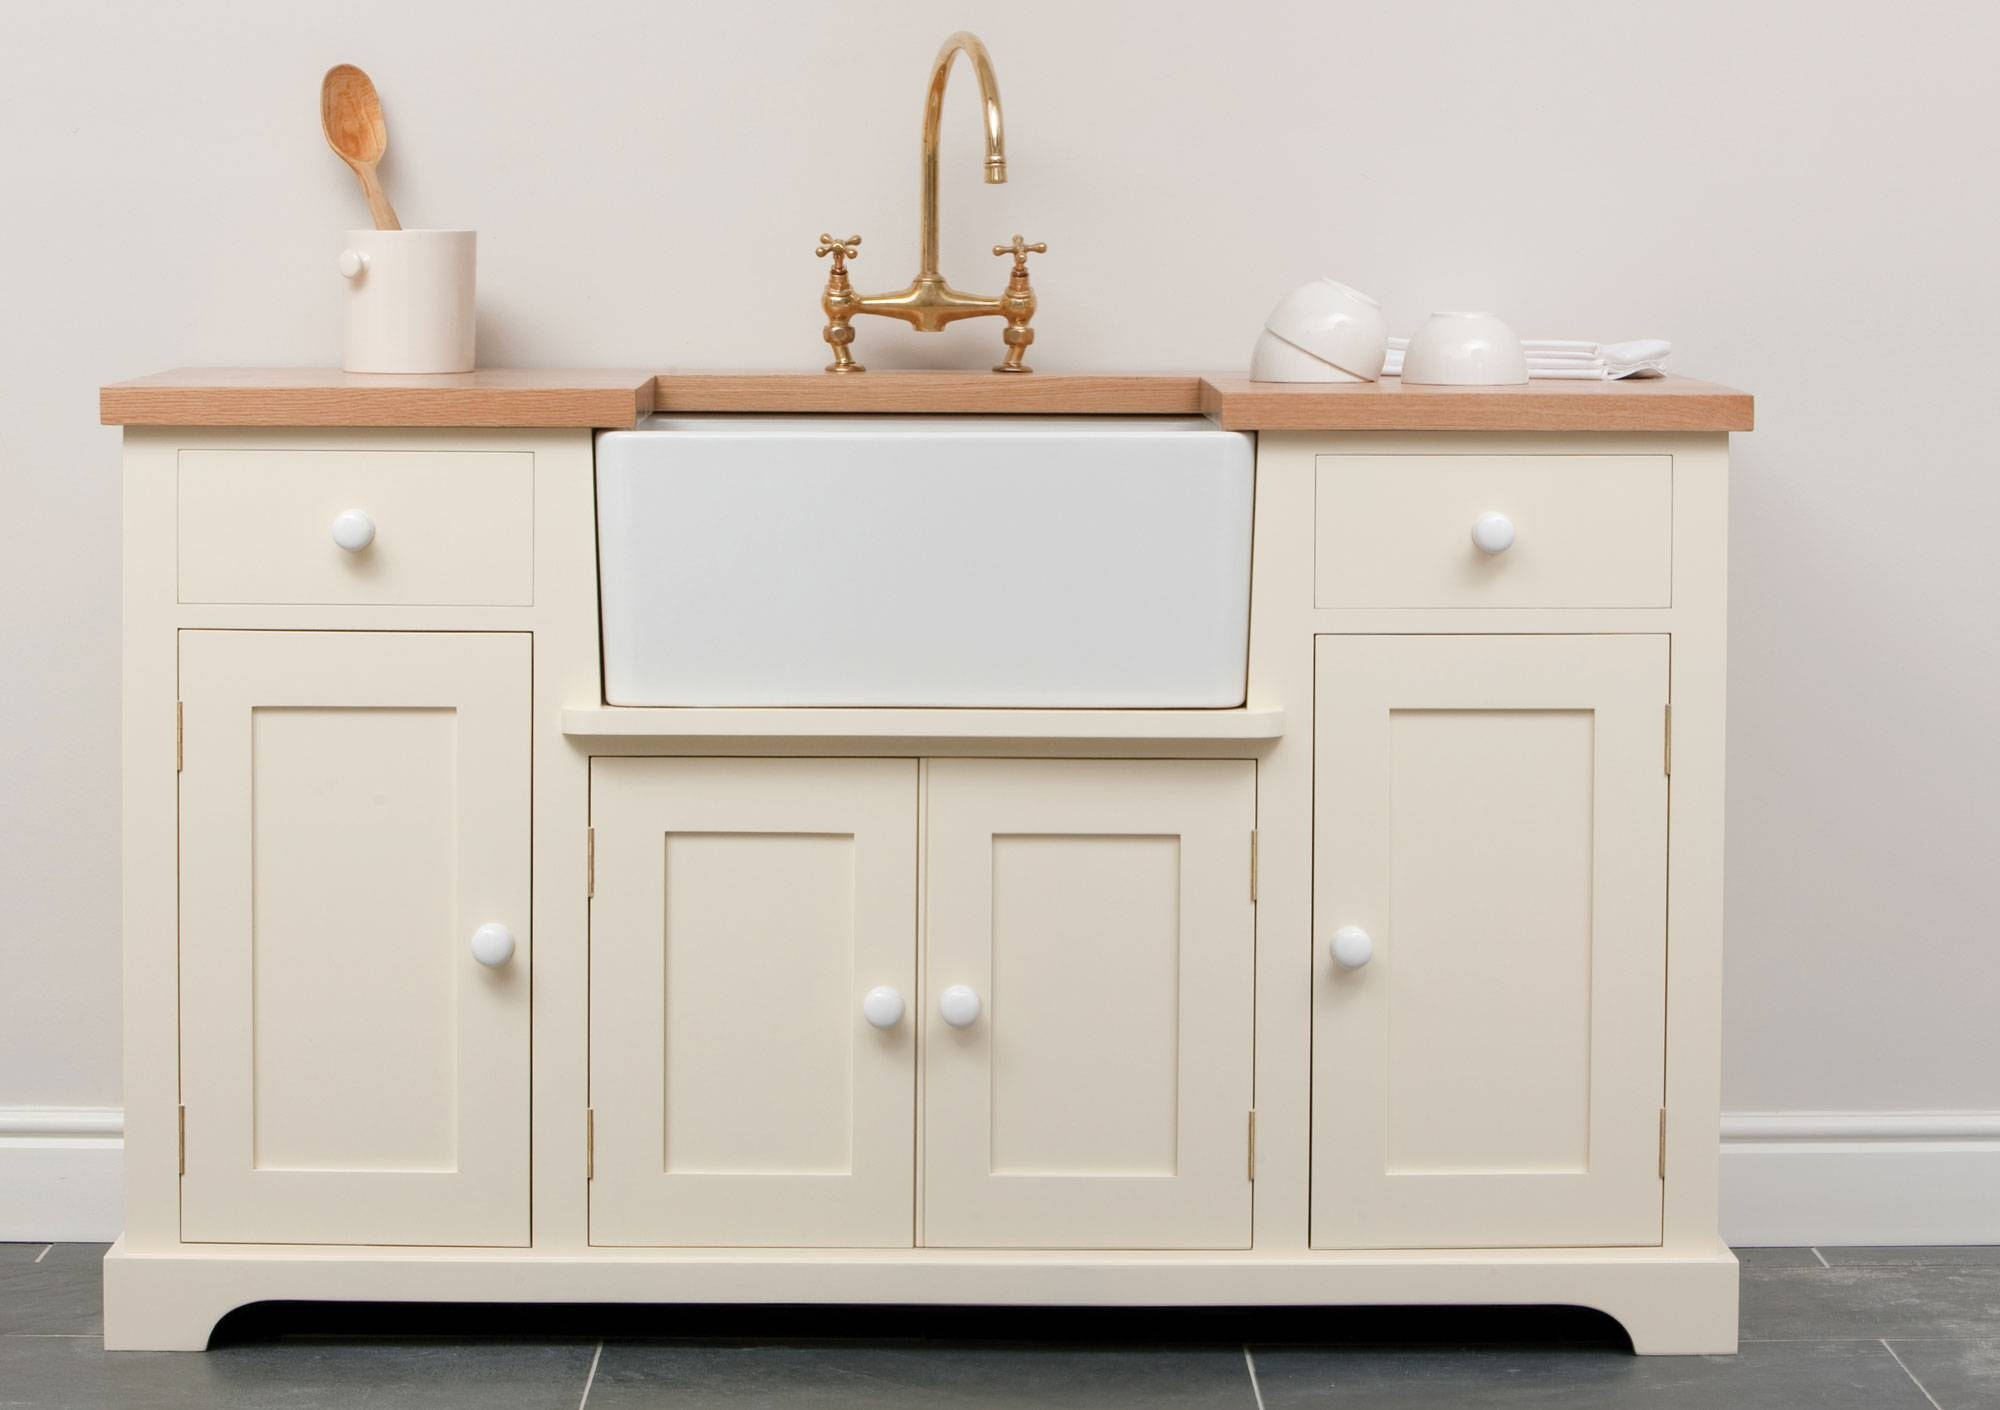 Solid Oak Sideboard Is Your First Choice Living Room Furniture – Hgnv In Free Standing Kitchen Sideboard (View 10 of 20)